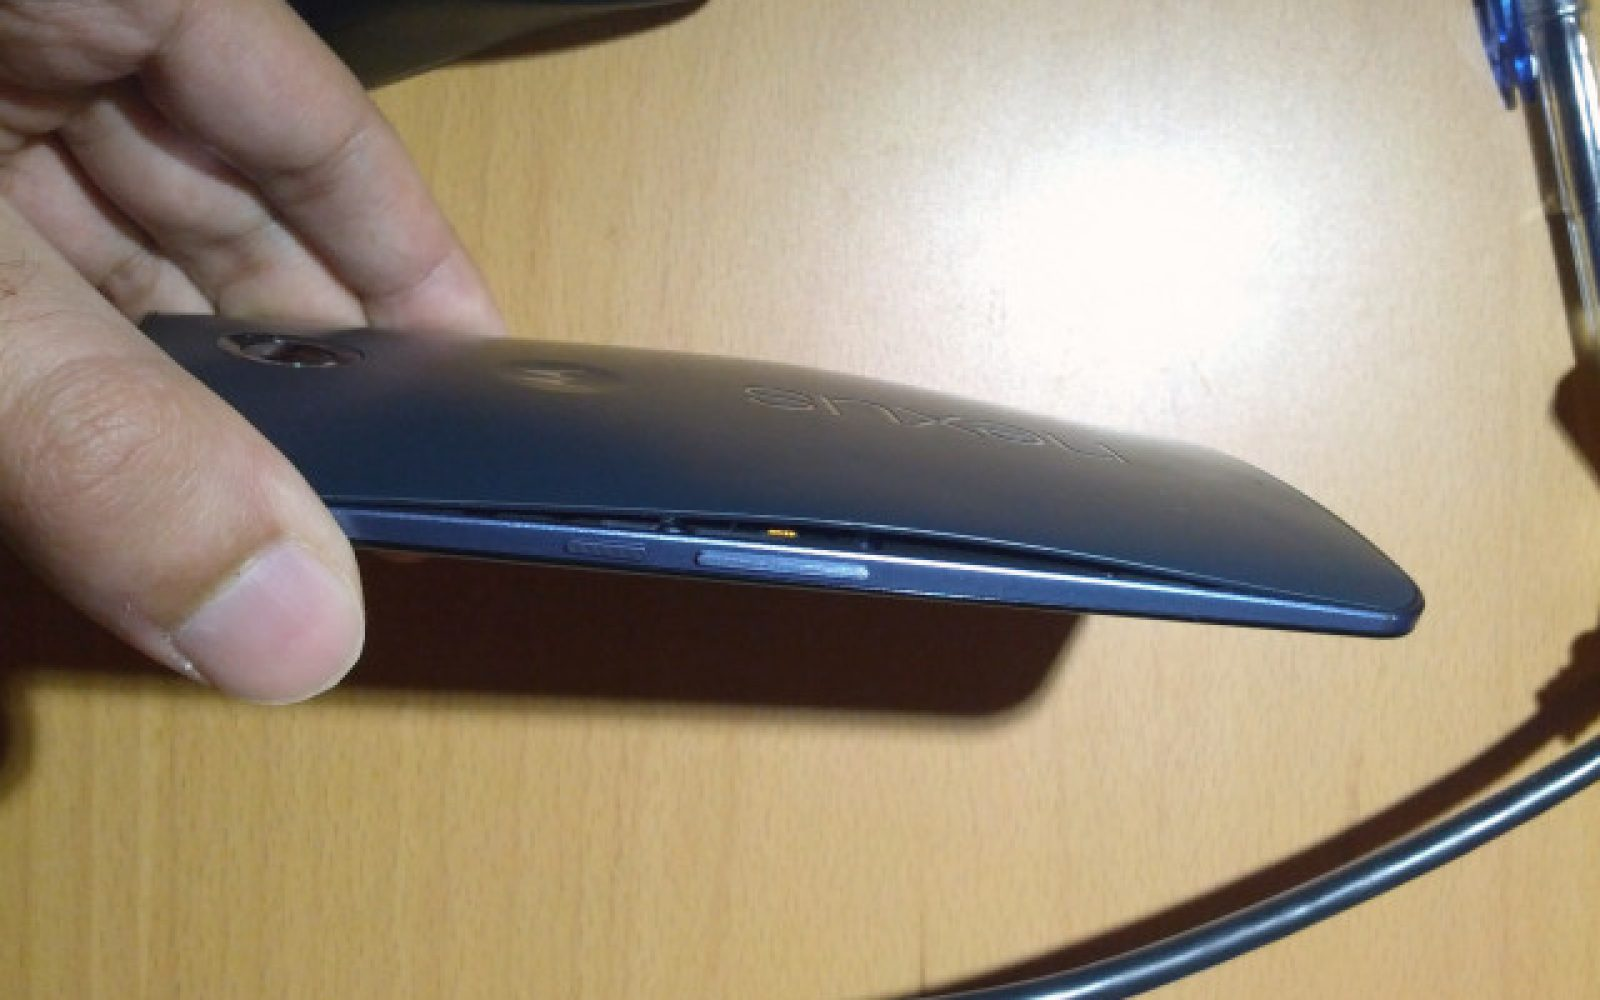 Motorola acknowledges Nexus 6 defect causing some back covers to come unglued